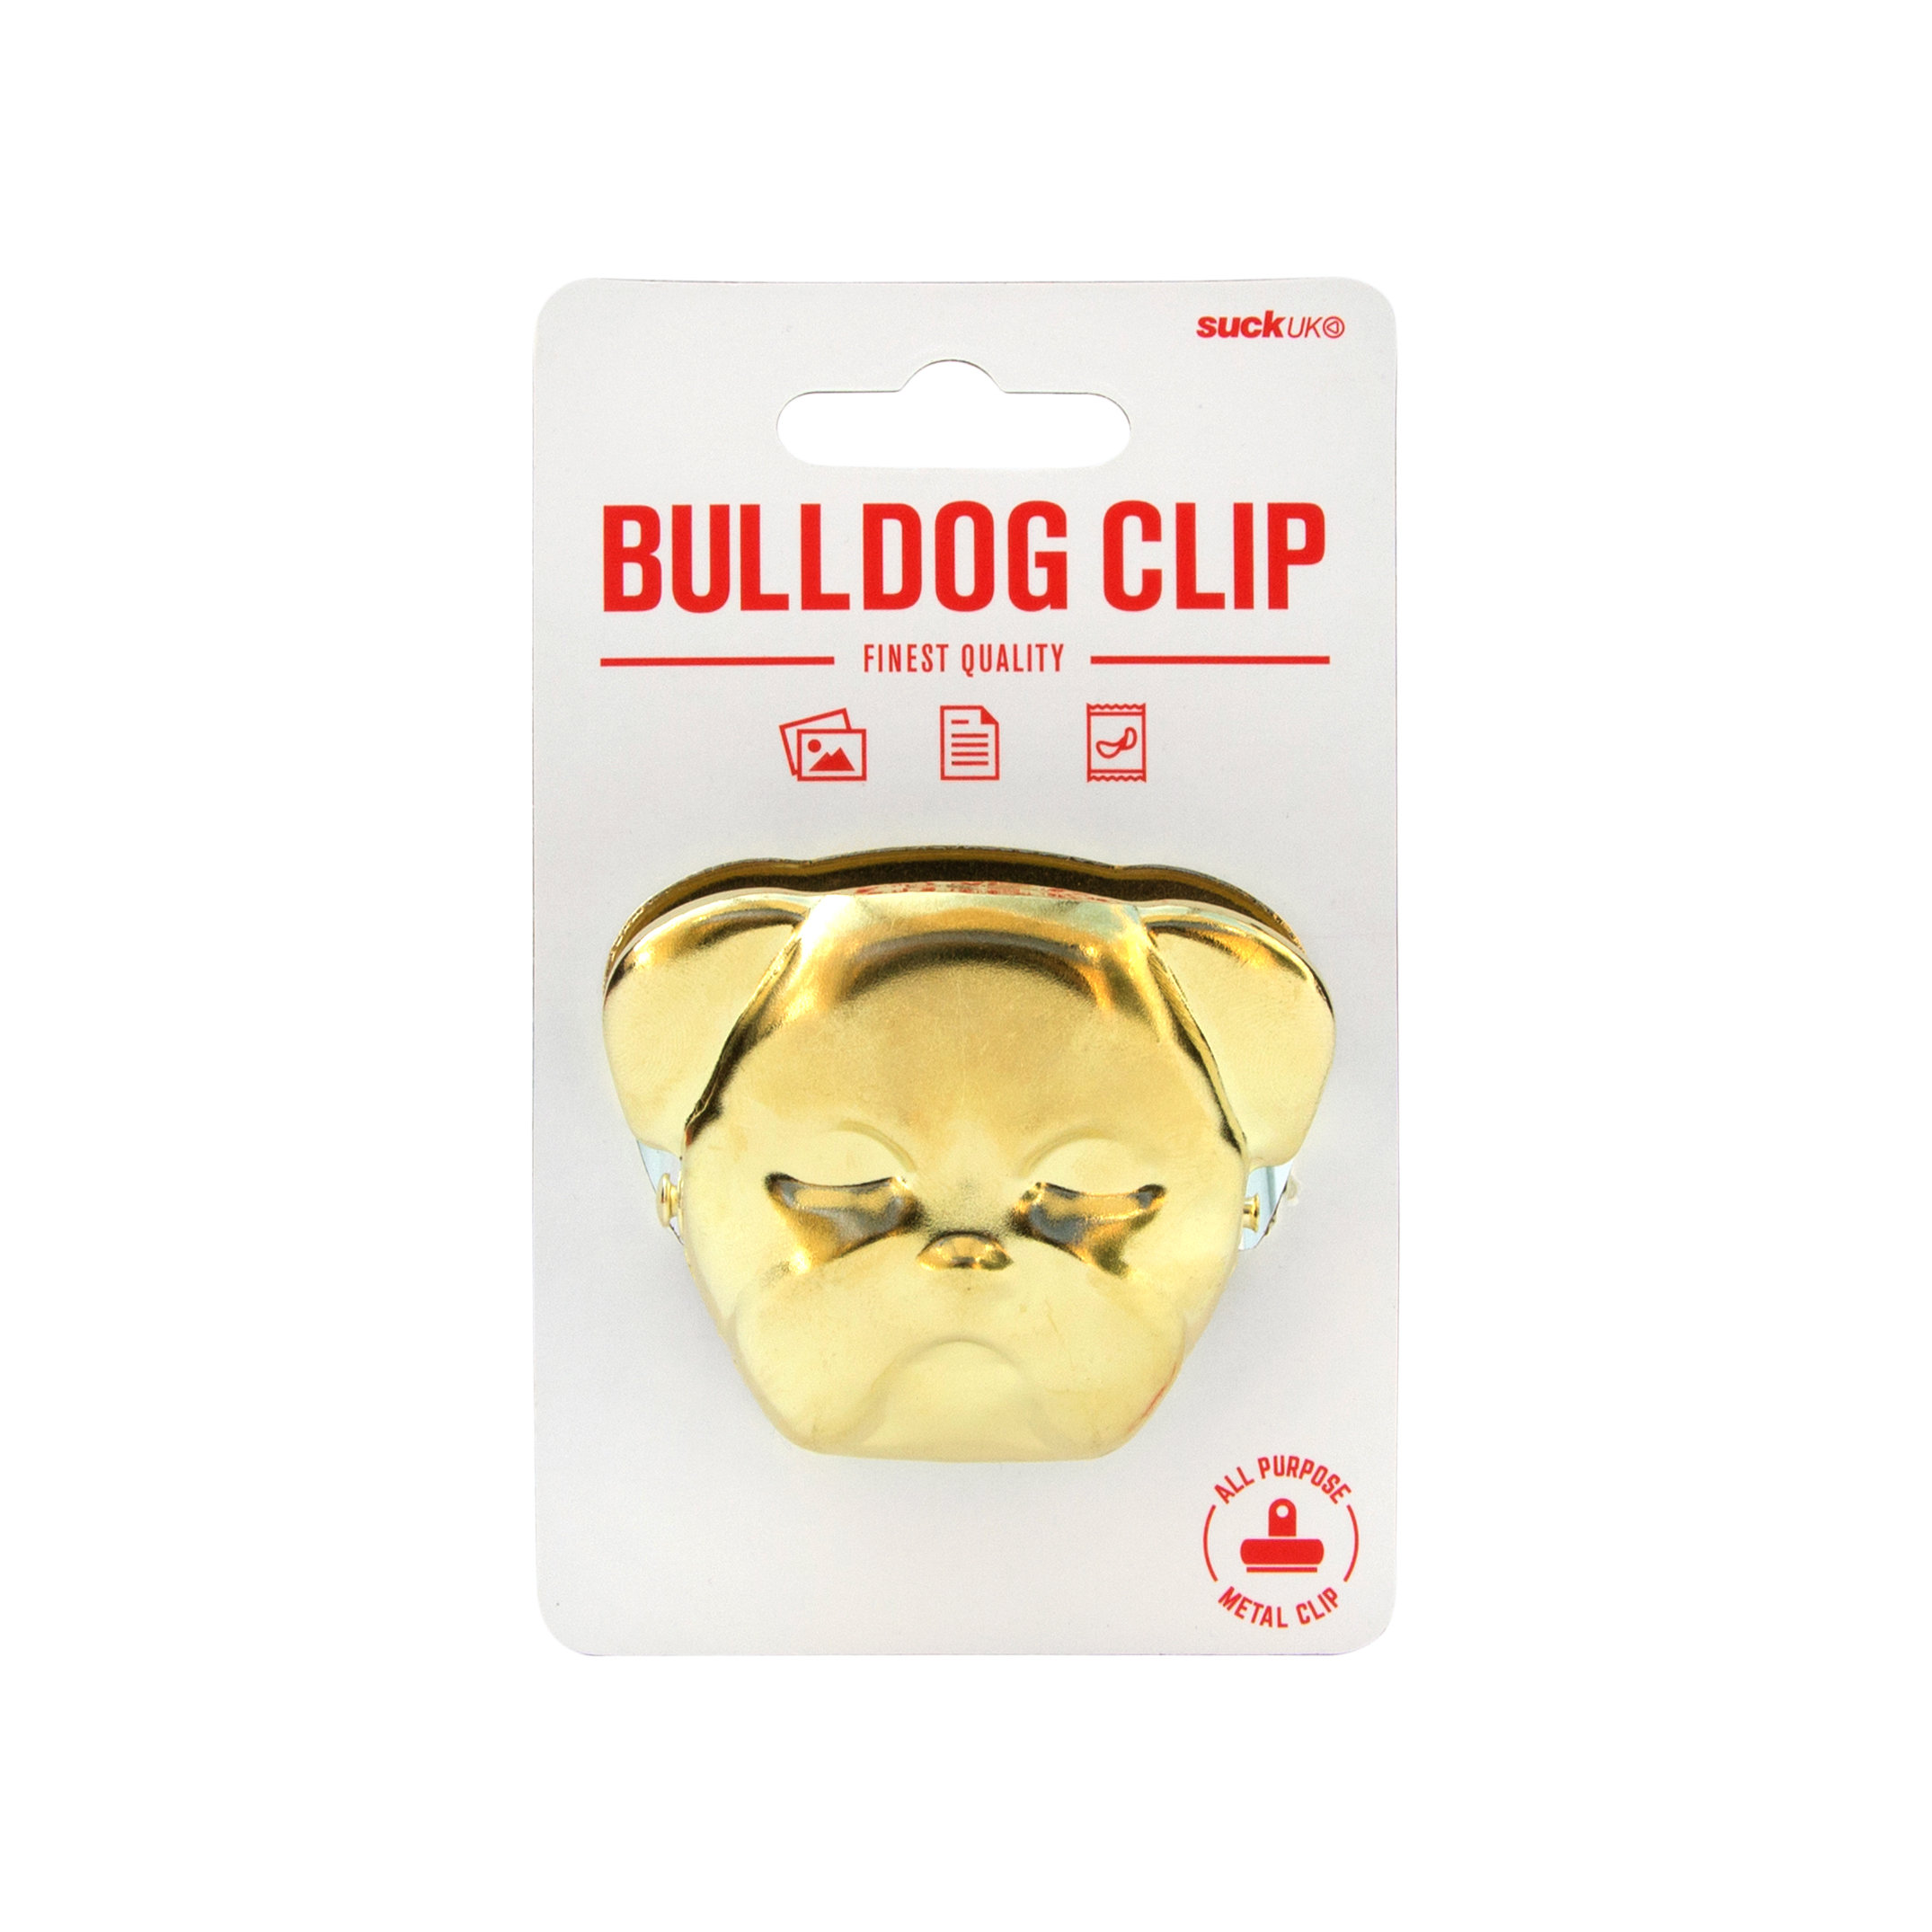 Brass bulldog clip for sealing food and organising paperwork